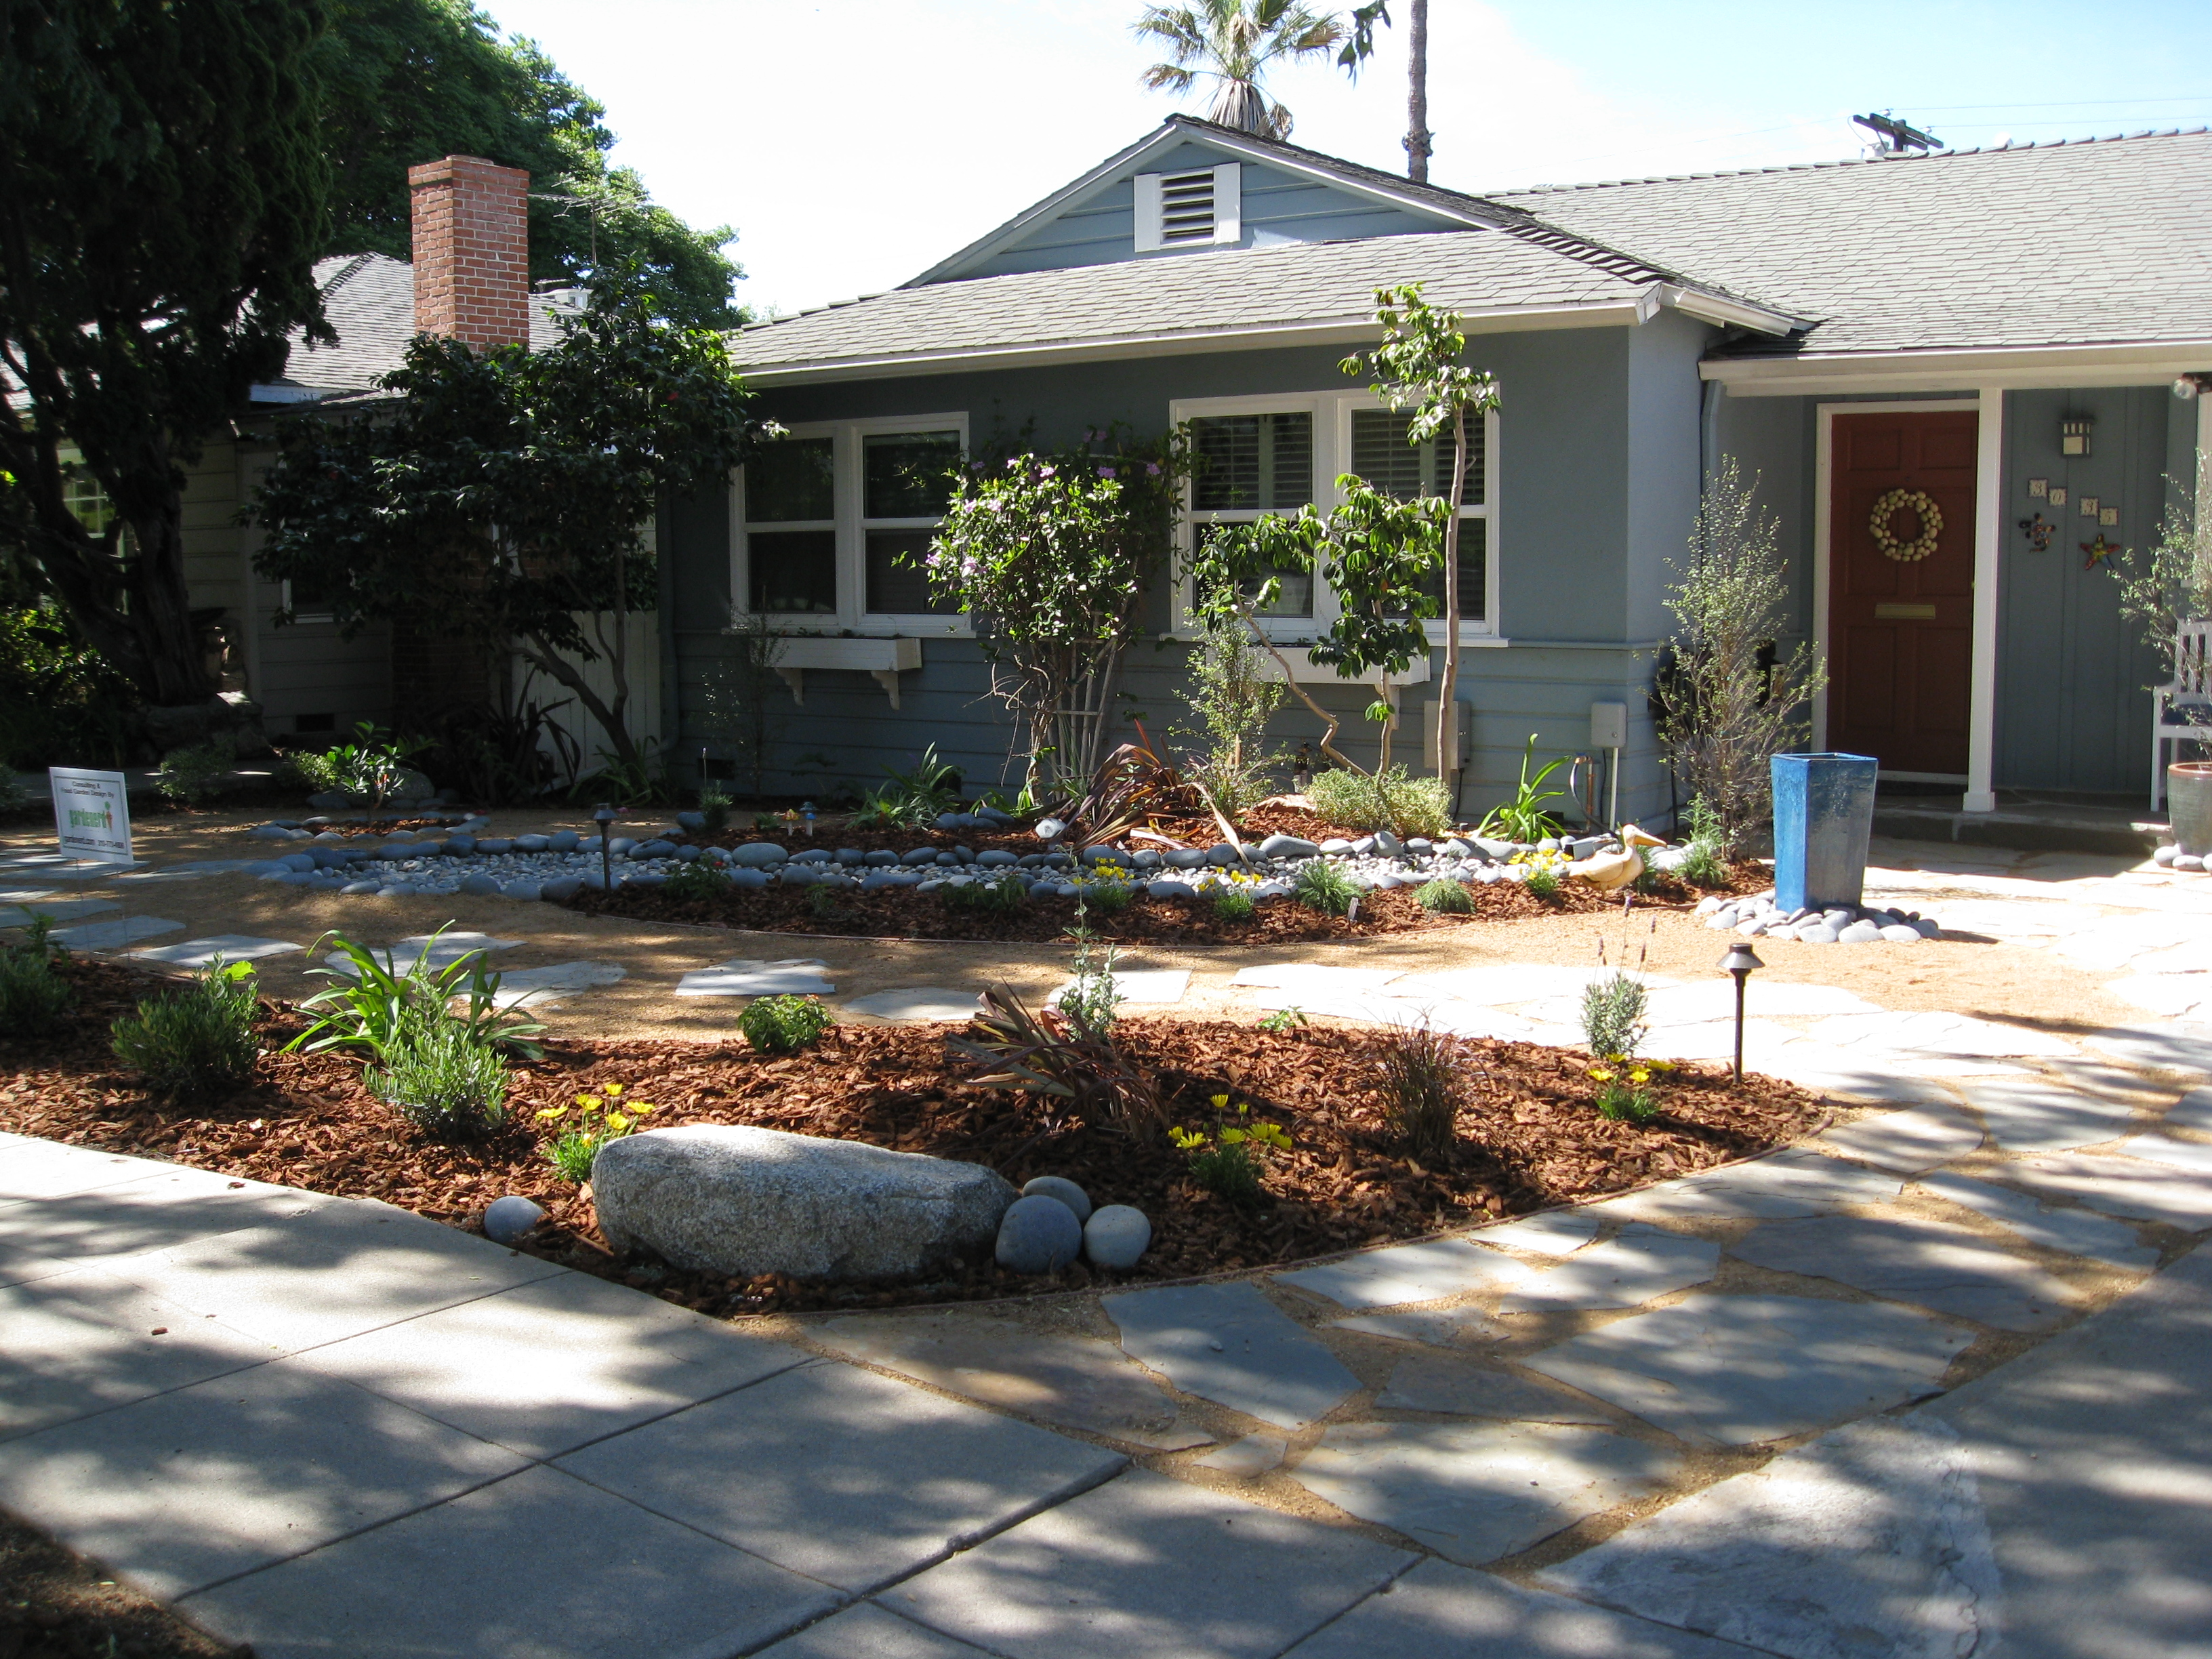 The final product is a curvaceous permeable landscape that educate the neighborhood about water catchment.